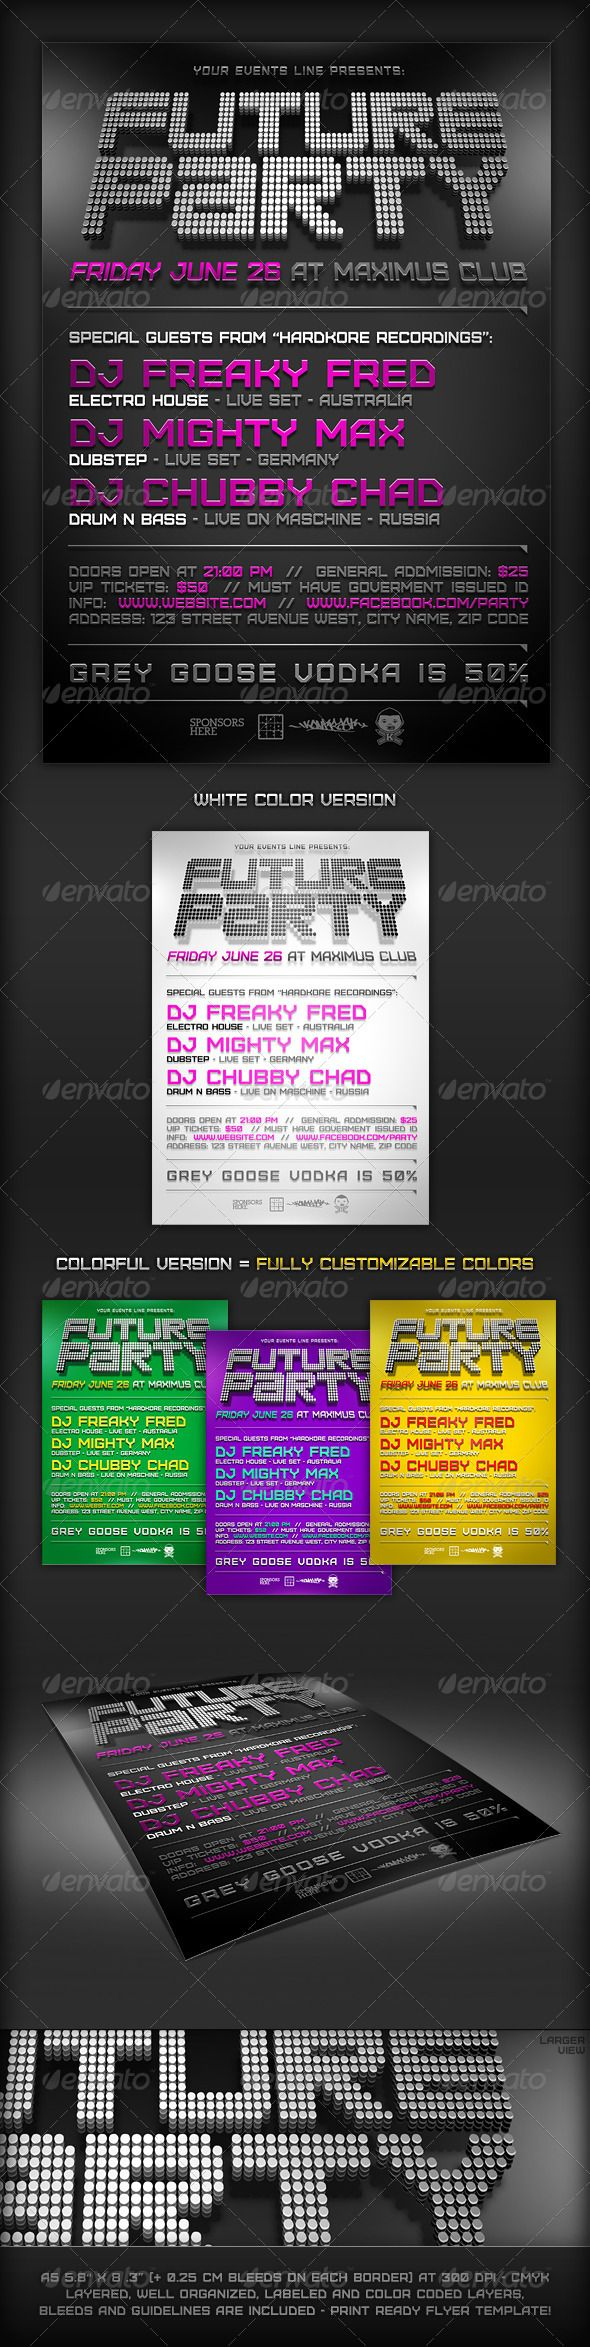 Minimal Future Flyer Template | Flyer template, Minimal and Template